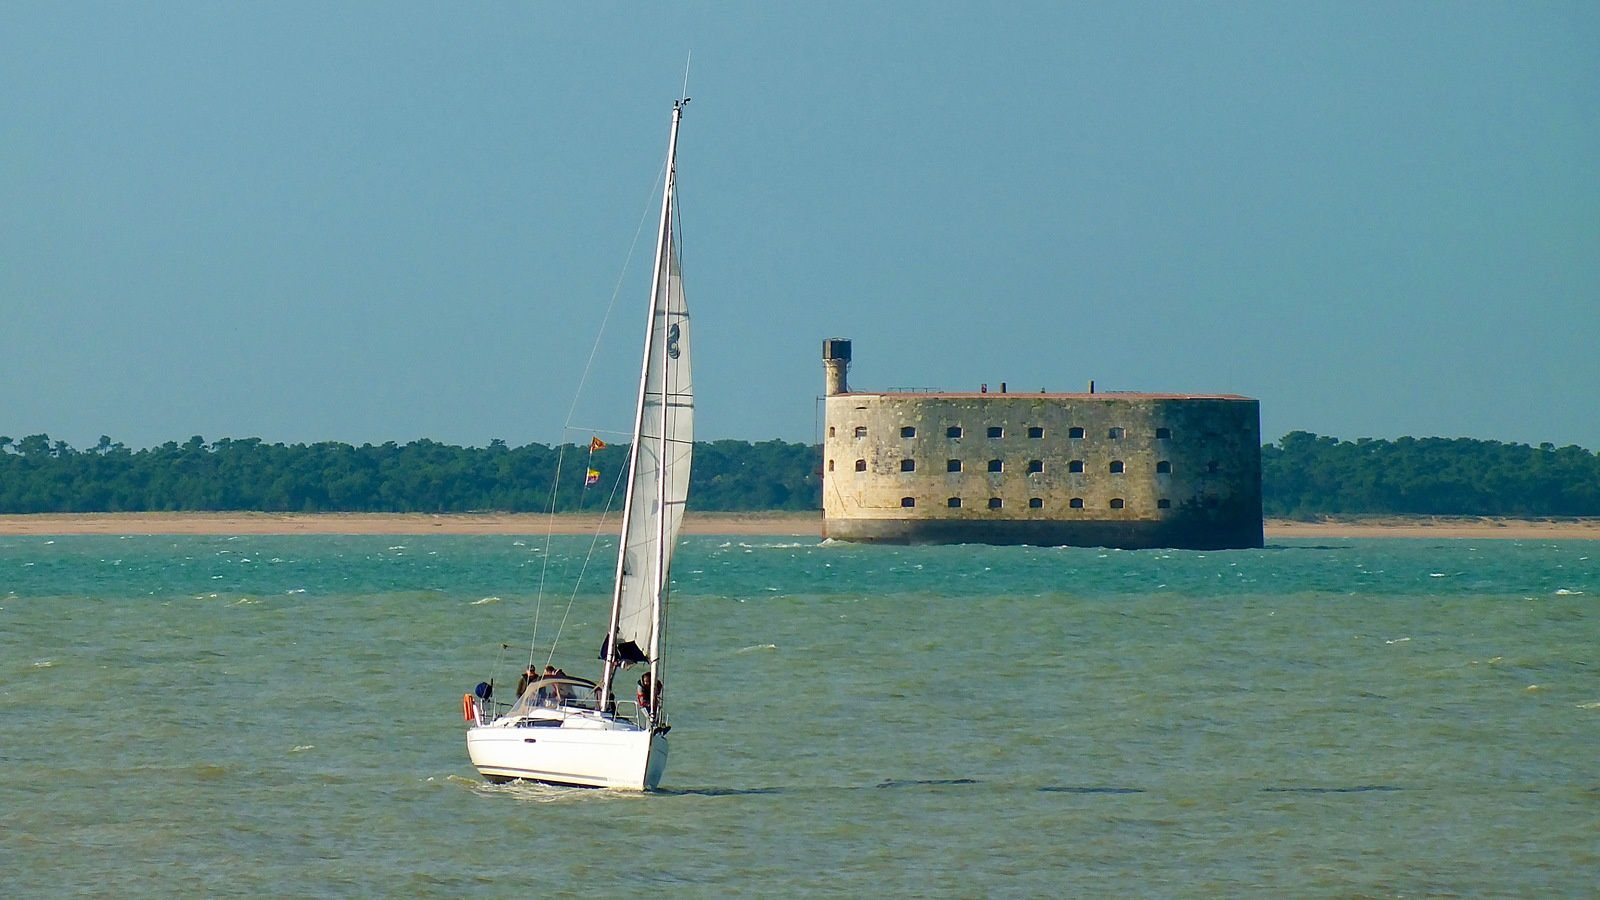 Tour de Fort Boyard